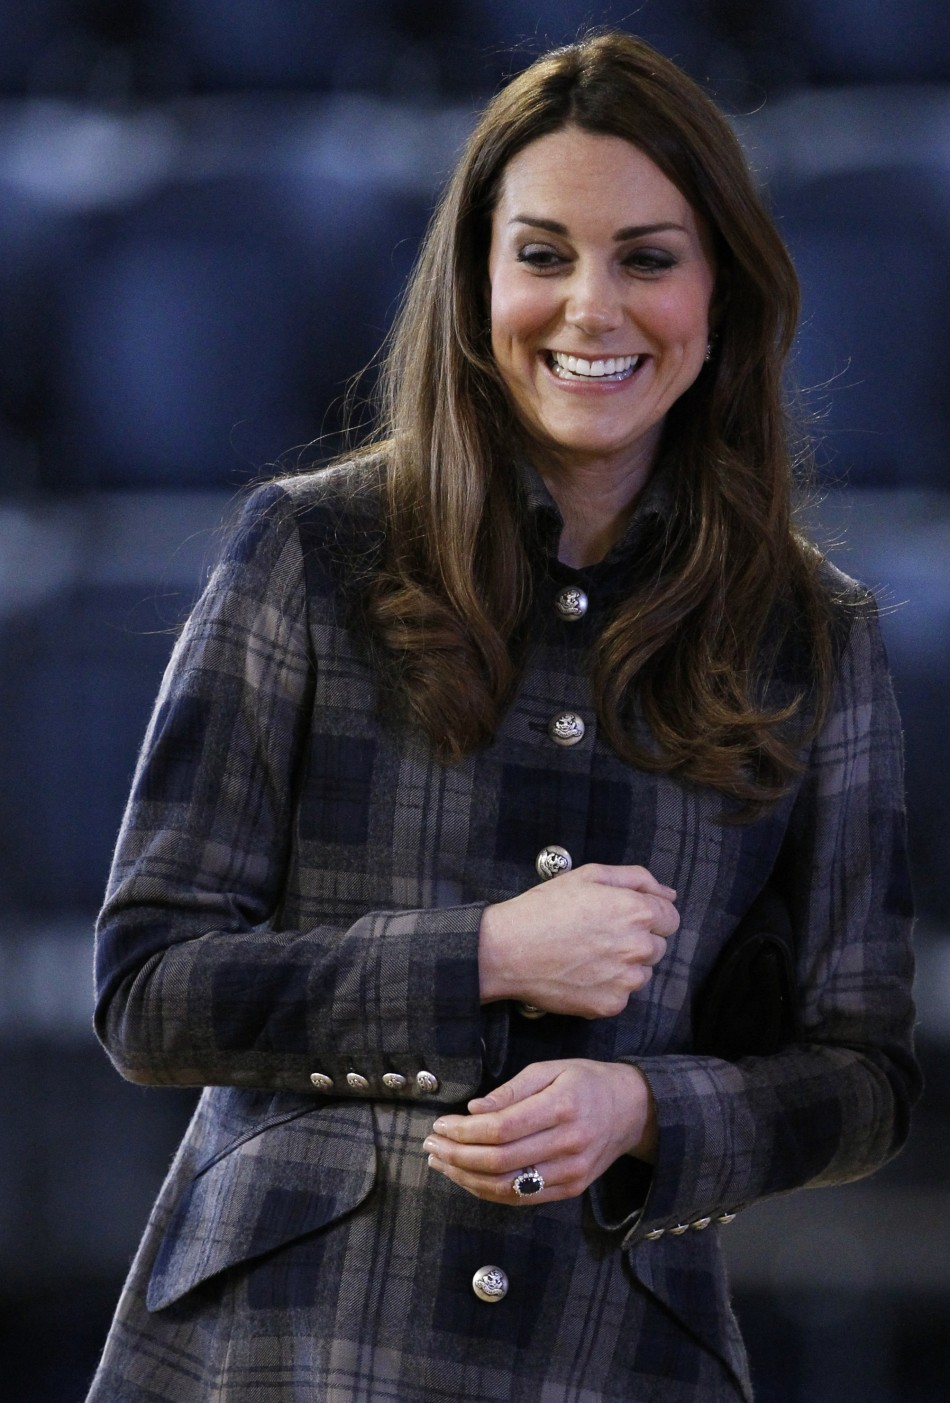 Britains Catherine, Duchess of Cambridge smiles during her visit to the Emirates Arena in Glasgow, Scotland April 4, 2013.